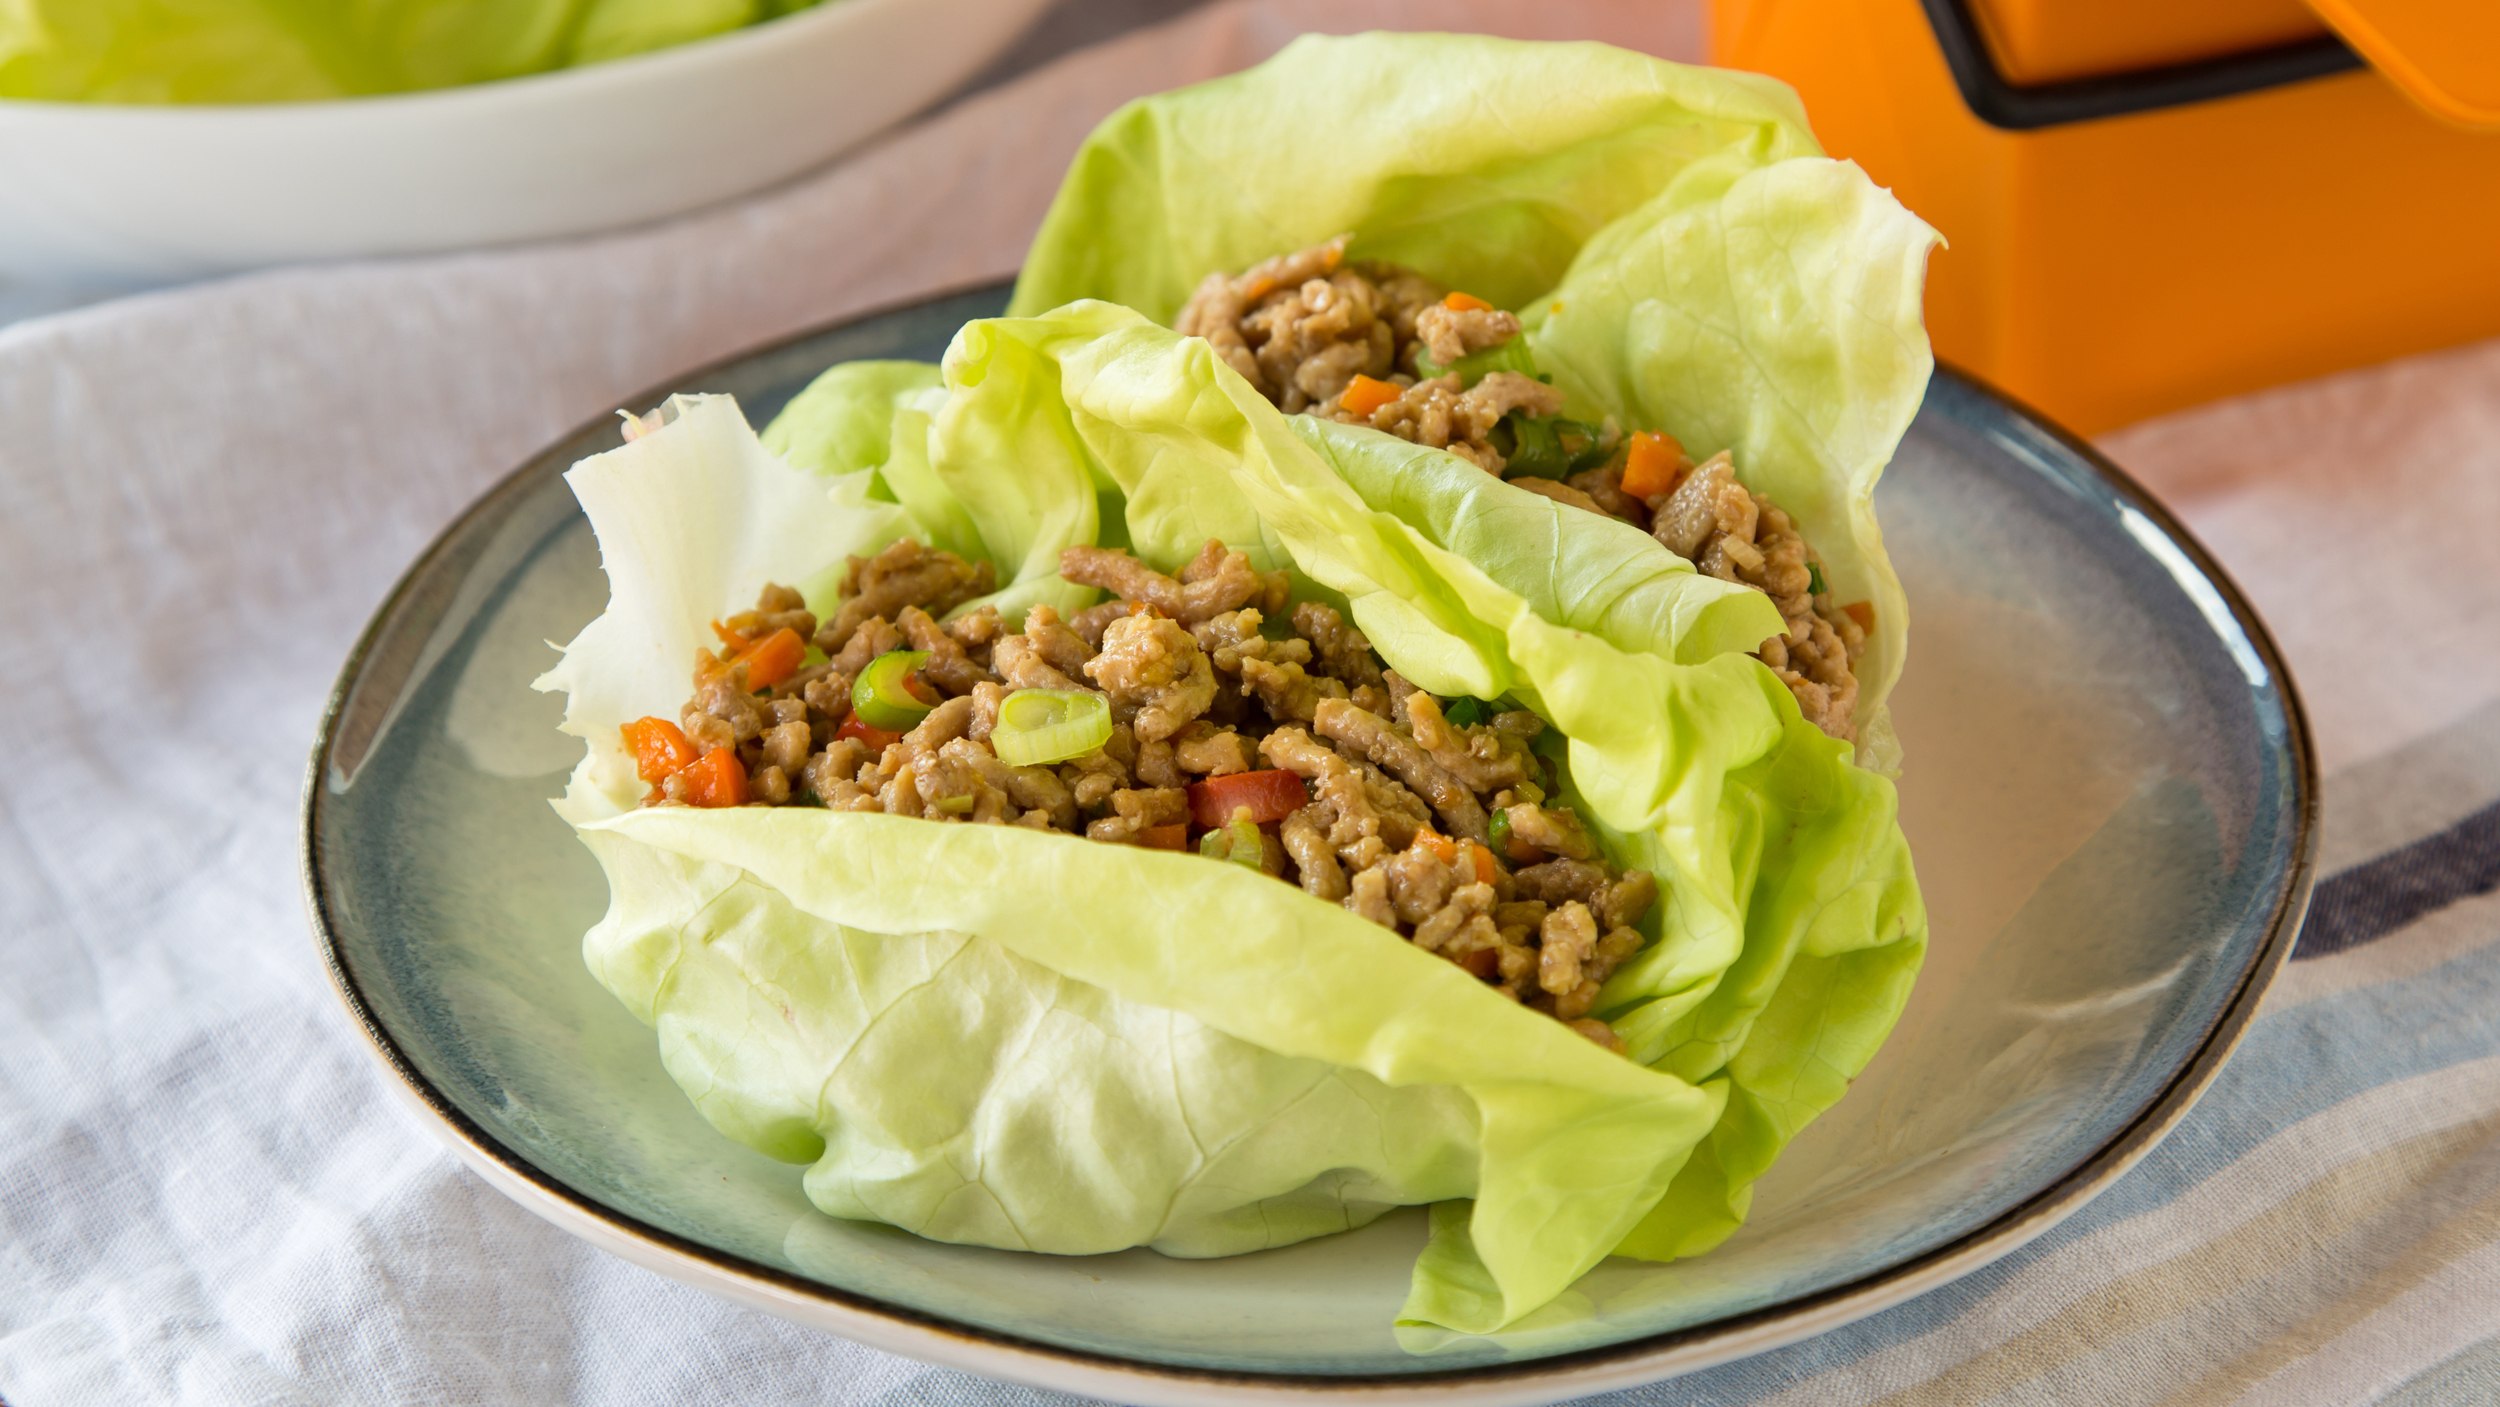 This make-ahead recipe for Asian lettuce wraps is so easy and ...